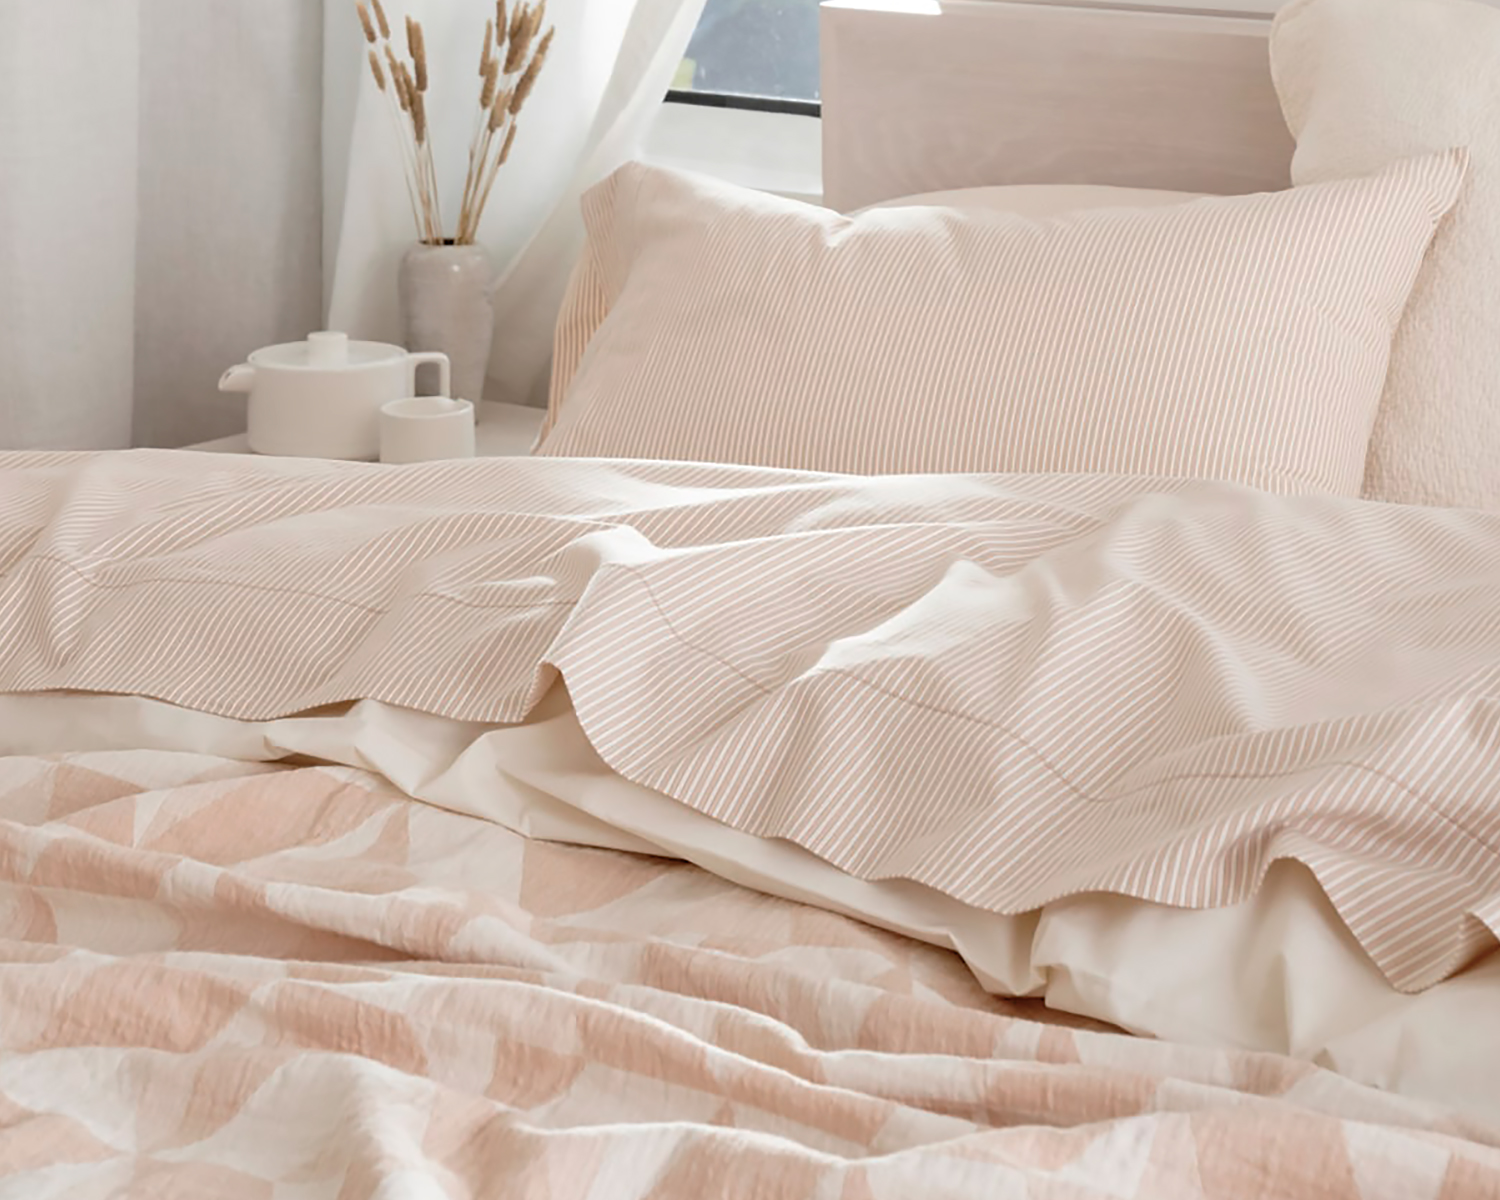 Organic Soft Washed Sheets and Pismo Blanket by Coyuchi